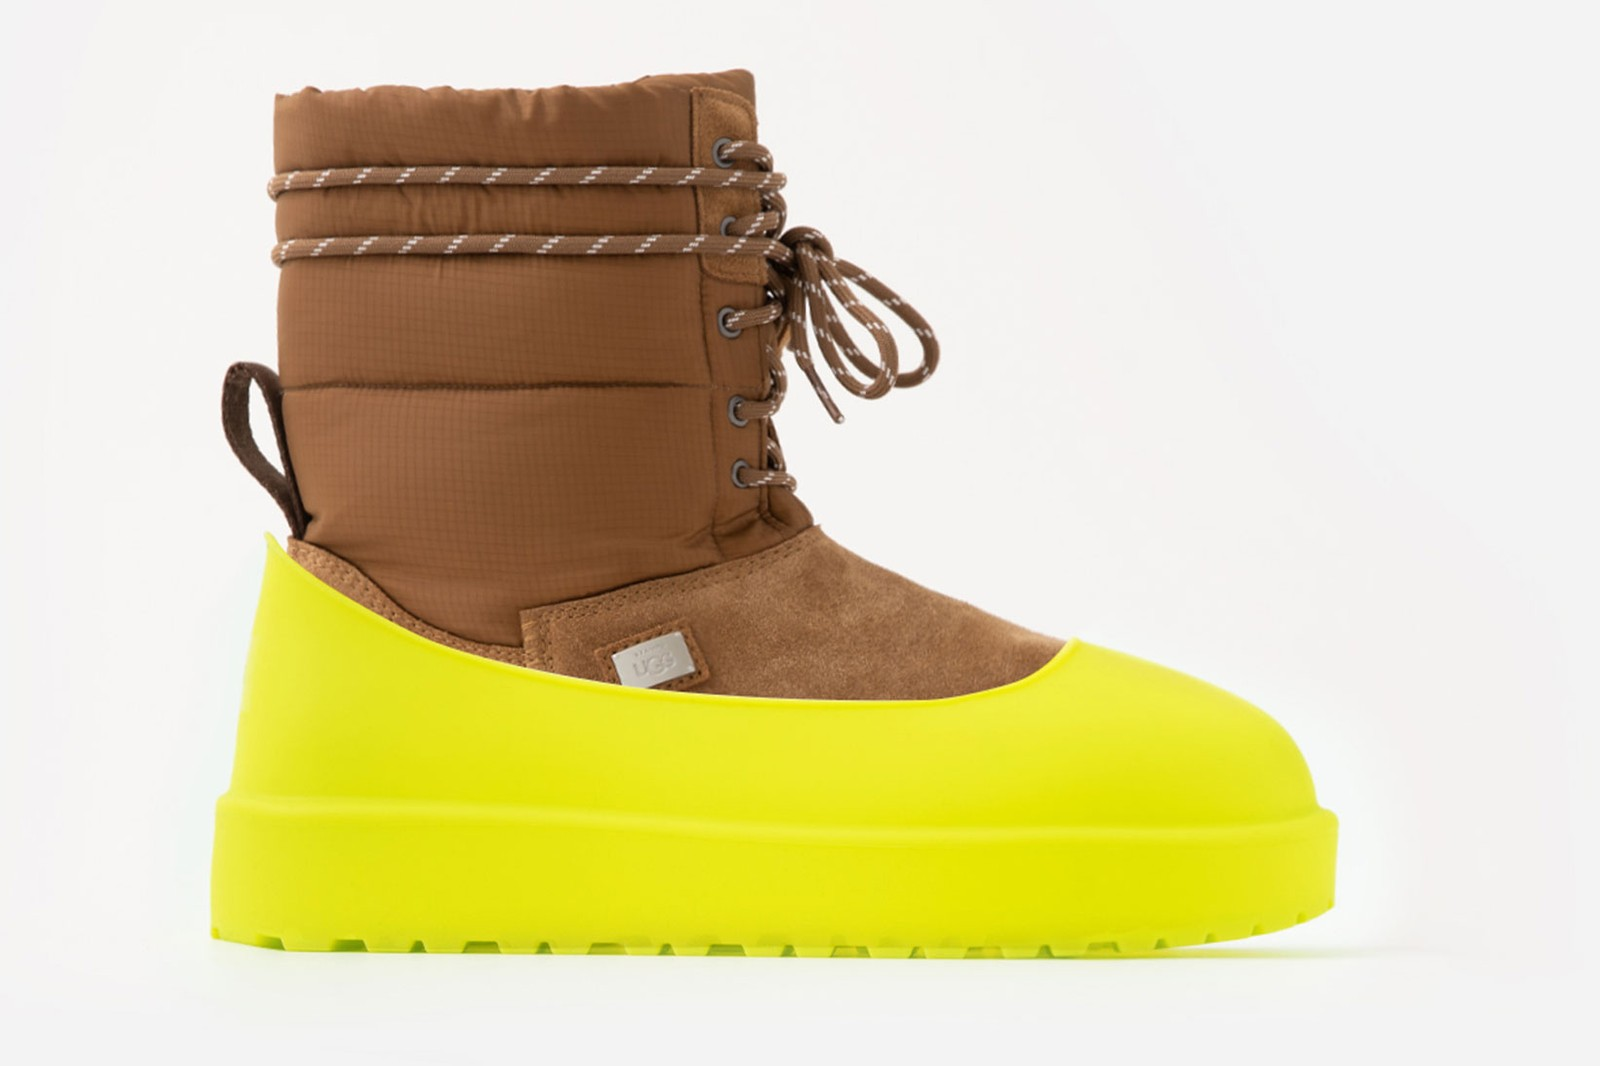 stampd ugg boots slides slippers tasman fluff collaboration 3-in-1 covers liners detachable fall winter shoes release